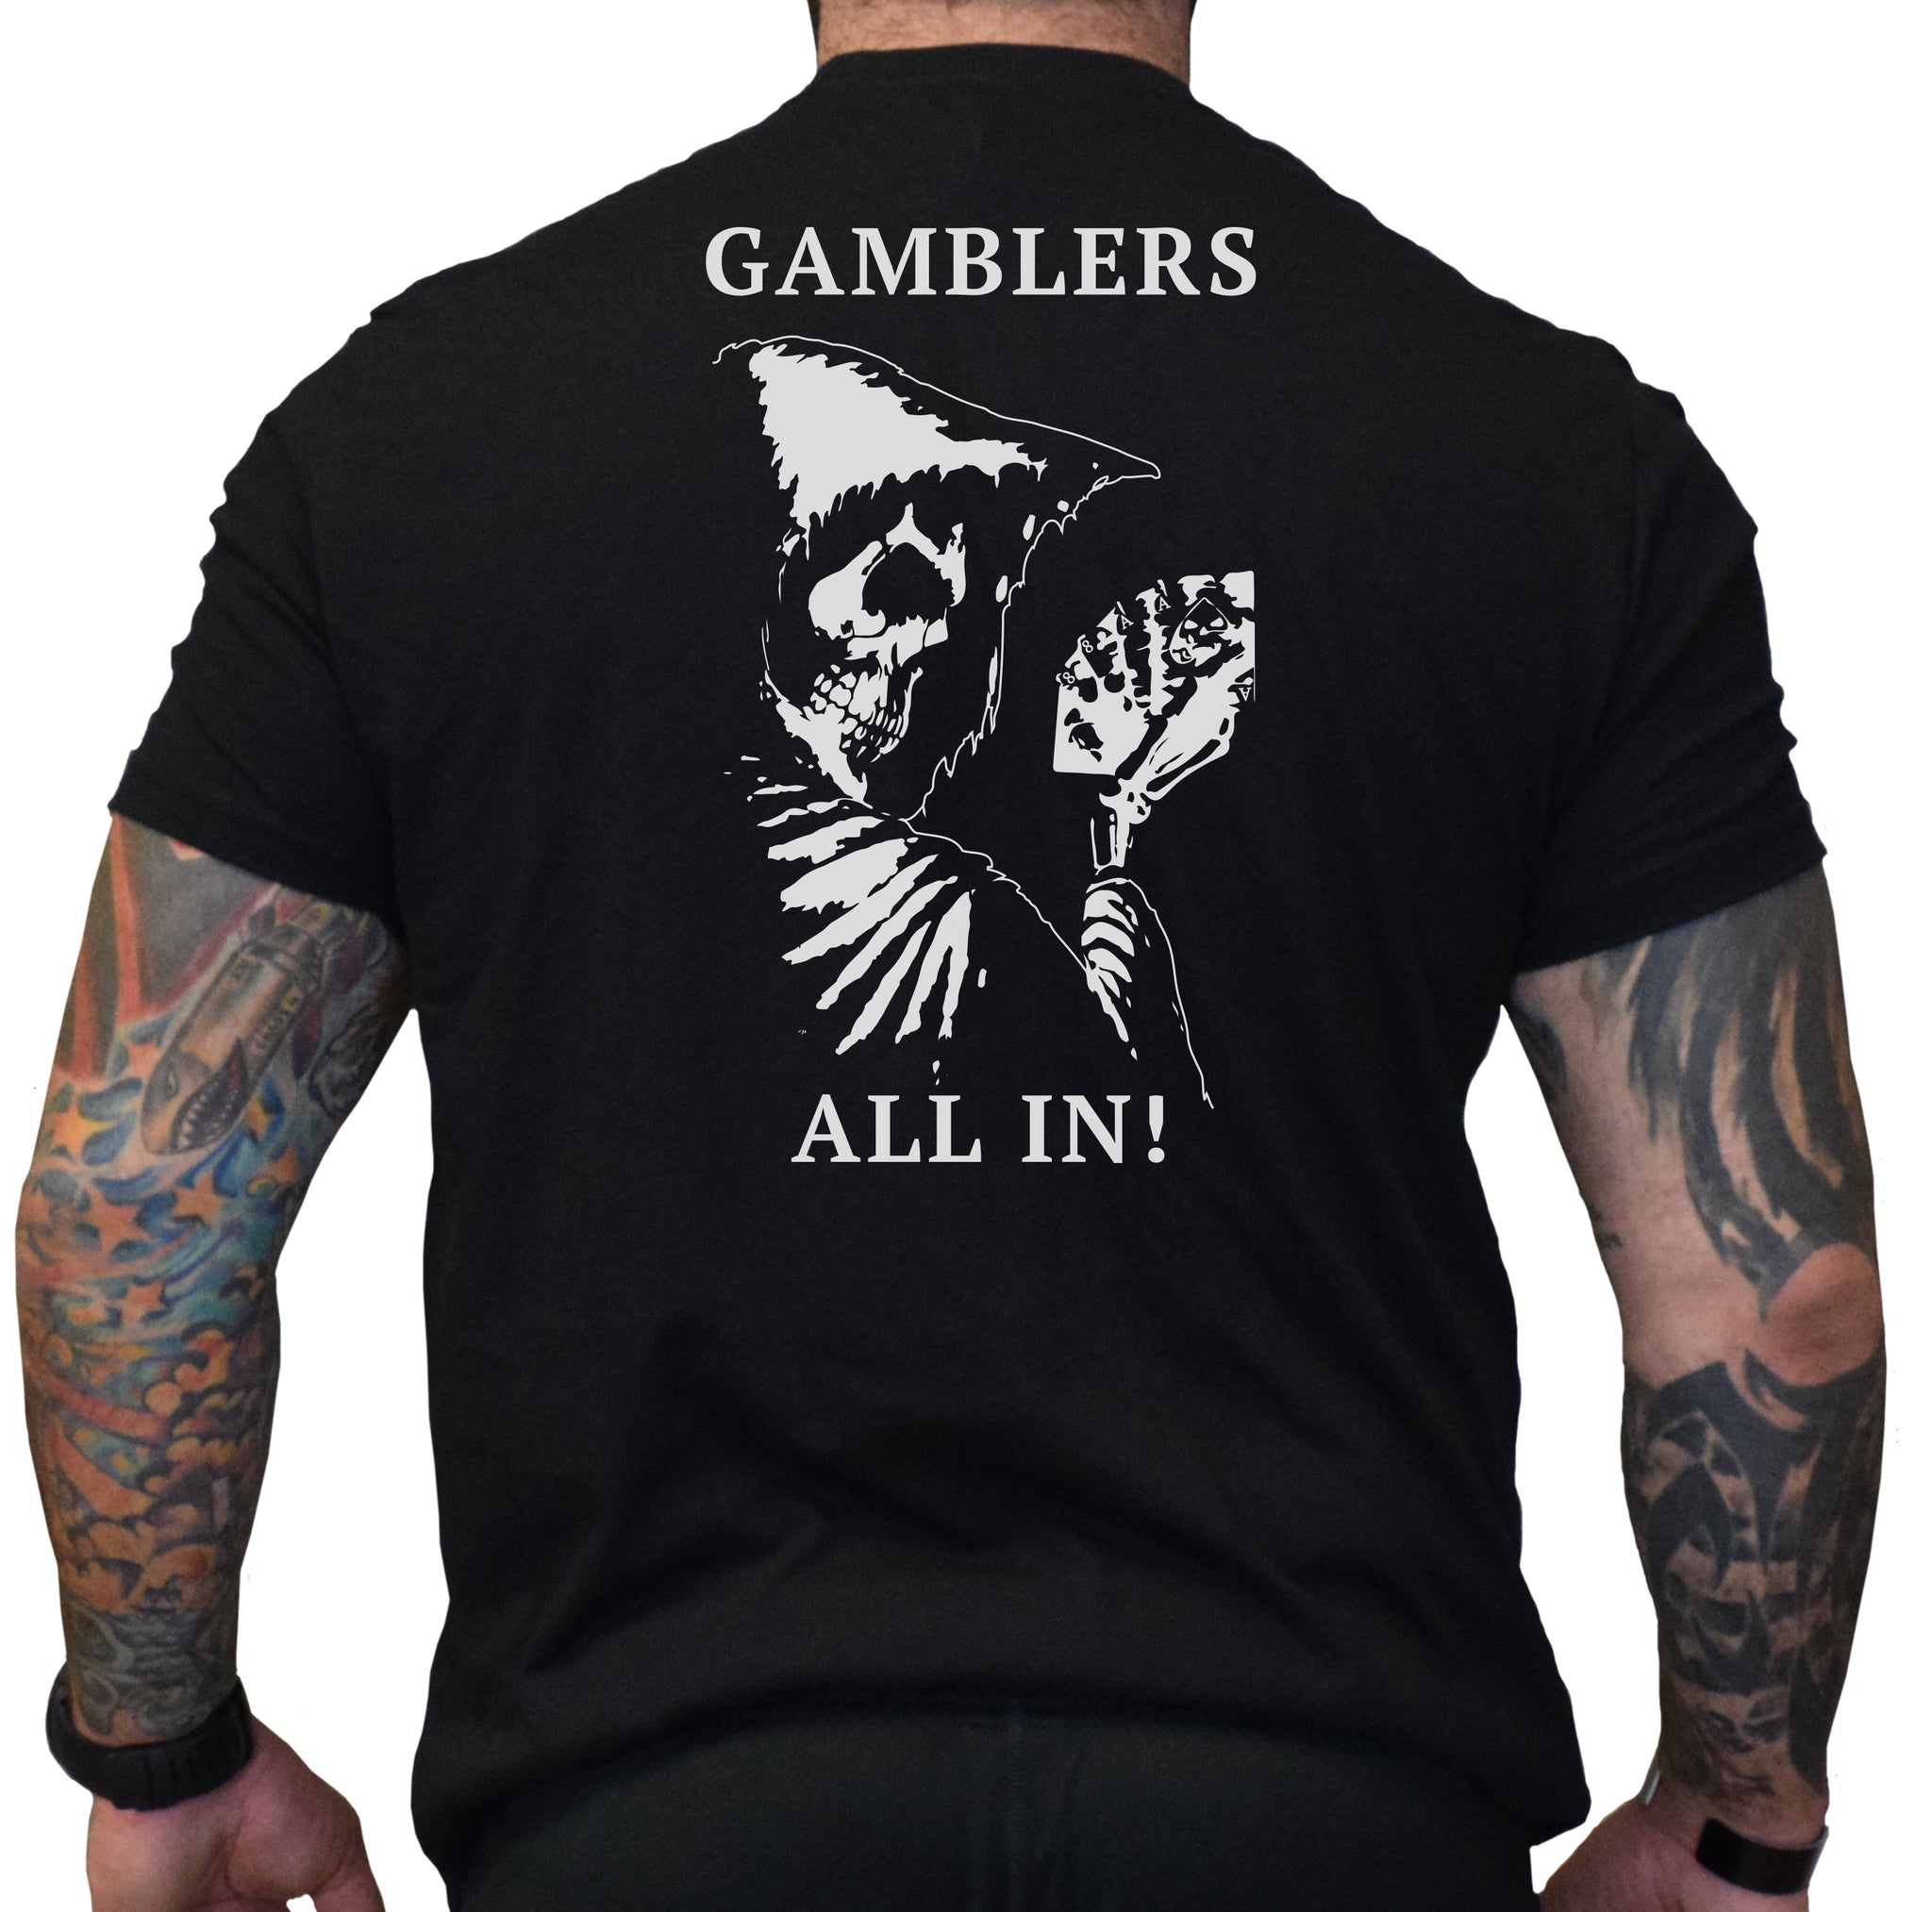 GCO - 1/68 Gamblers - All In!